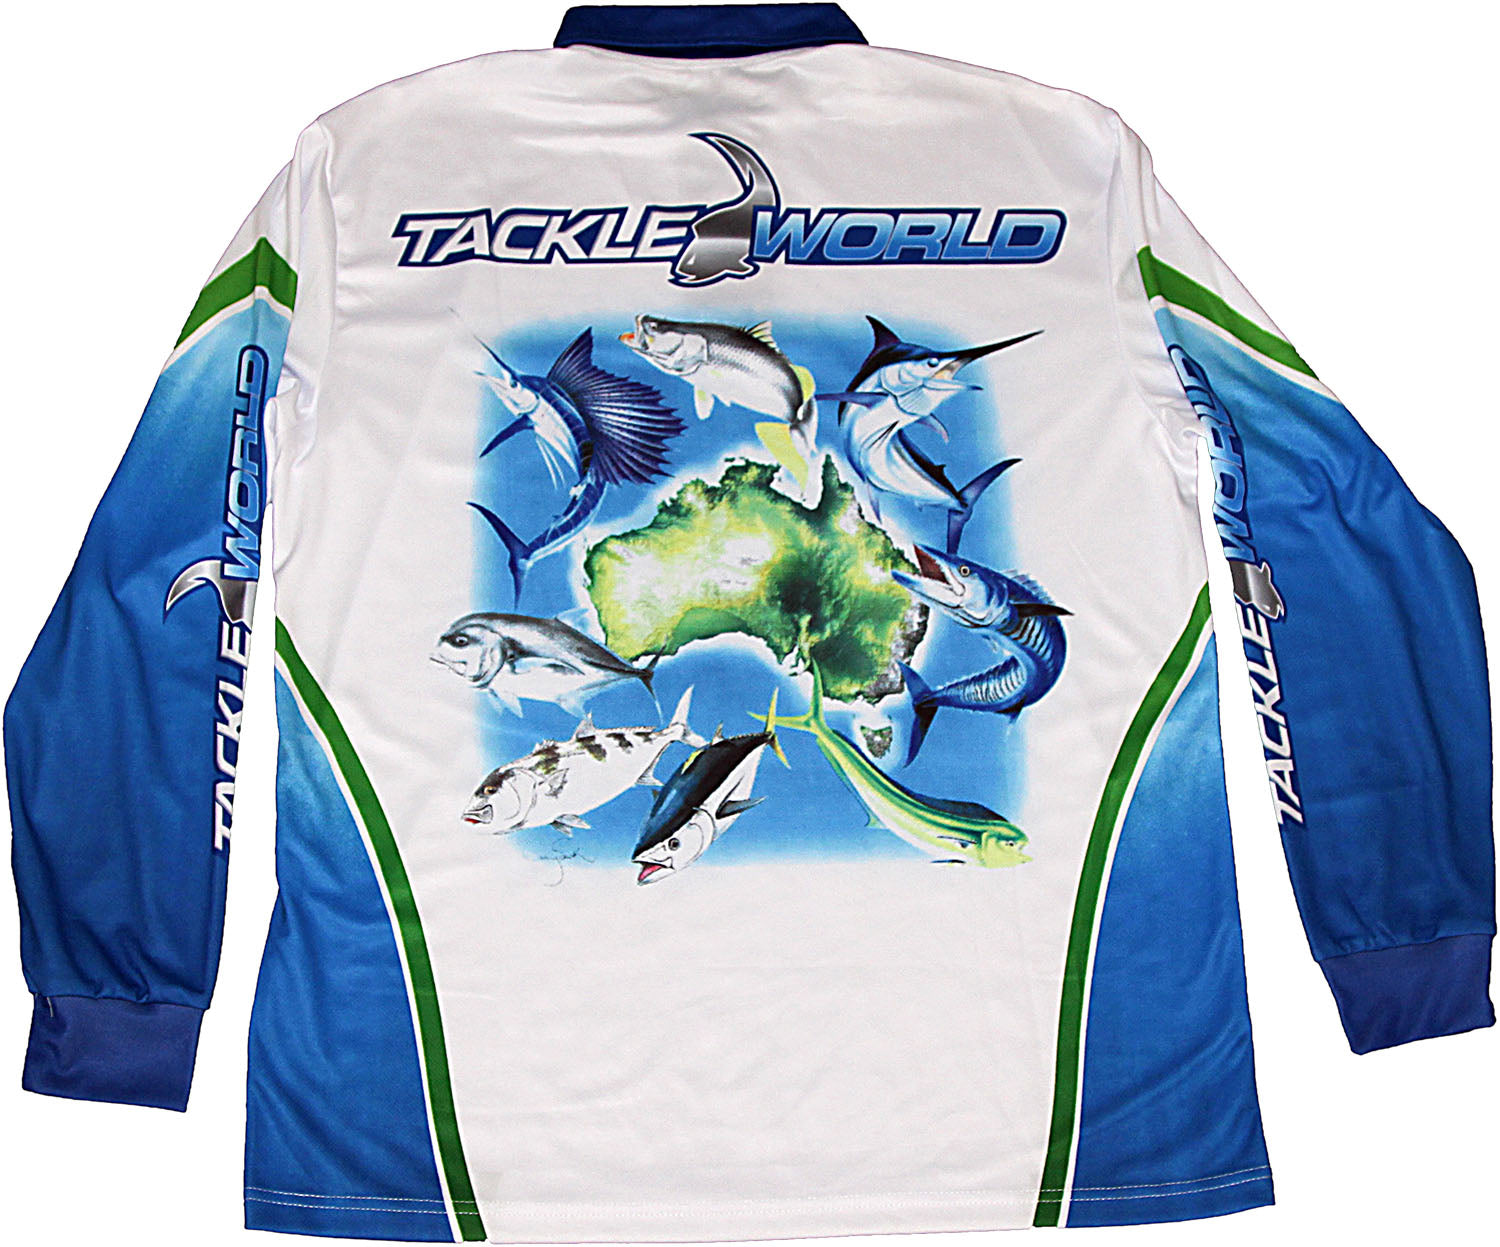 Tackle World Ausfish Shirt Adult Blue